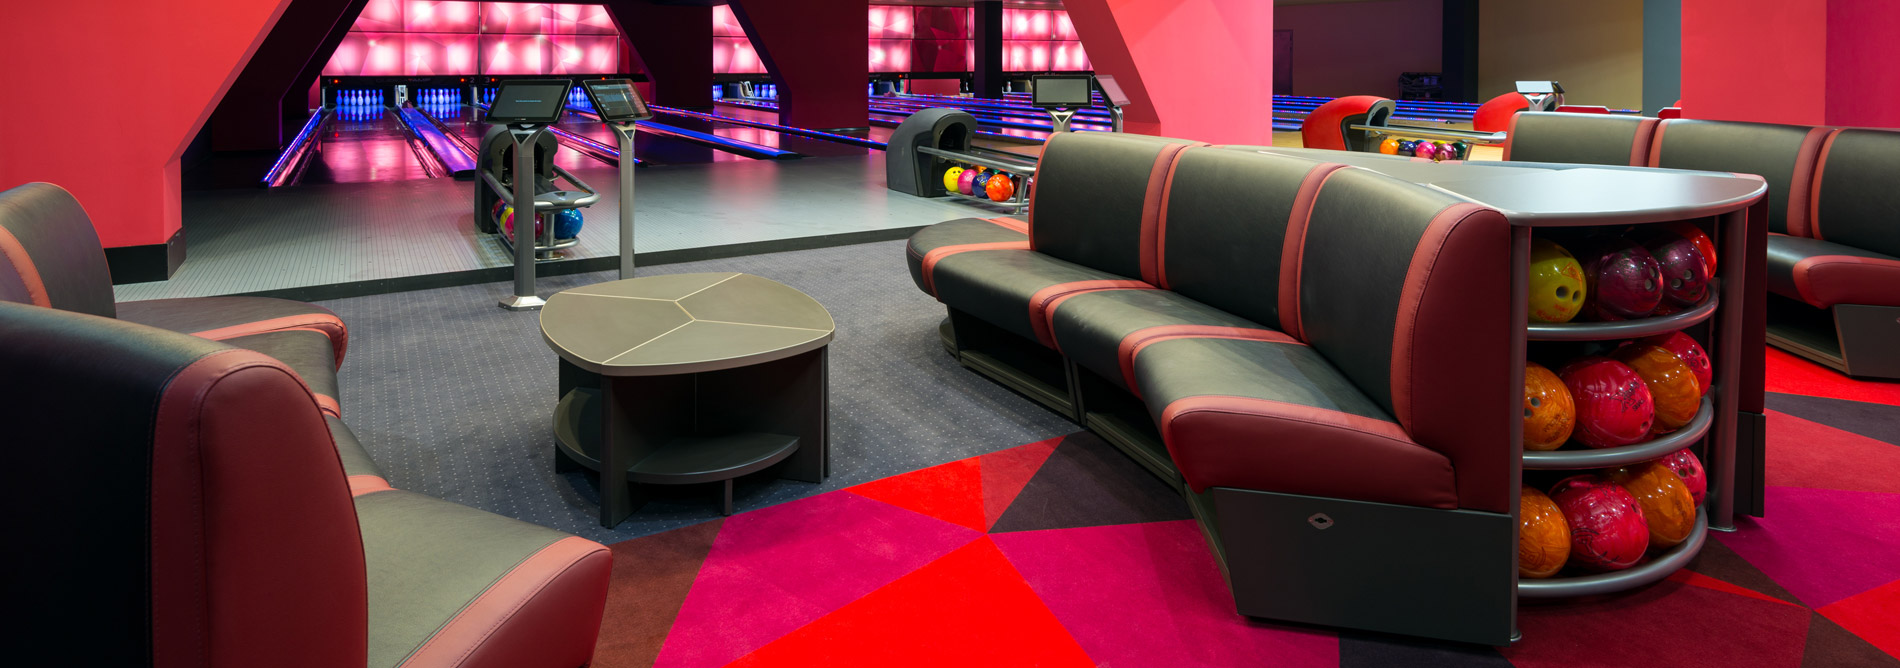 Bowling QubicaAMF Furniture Design Elements Harmony Banner